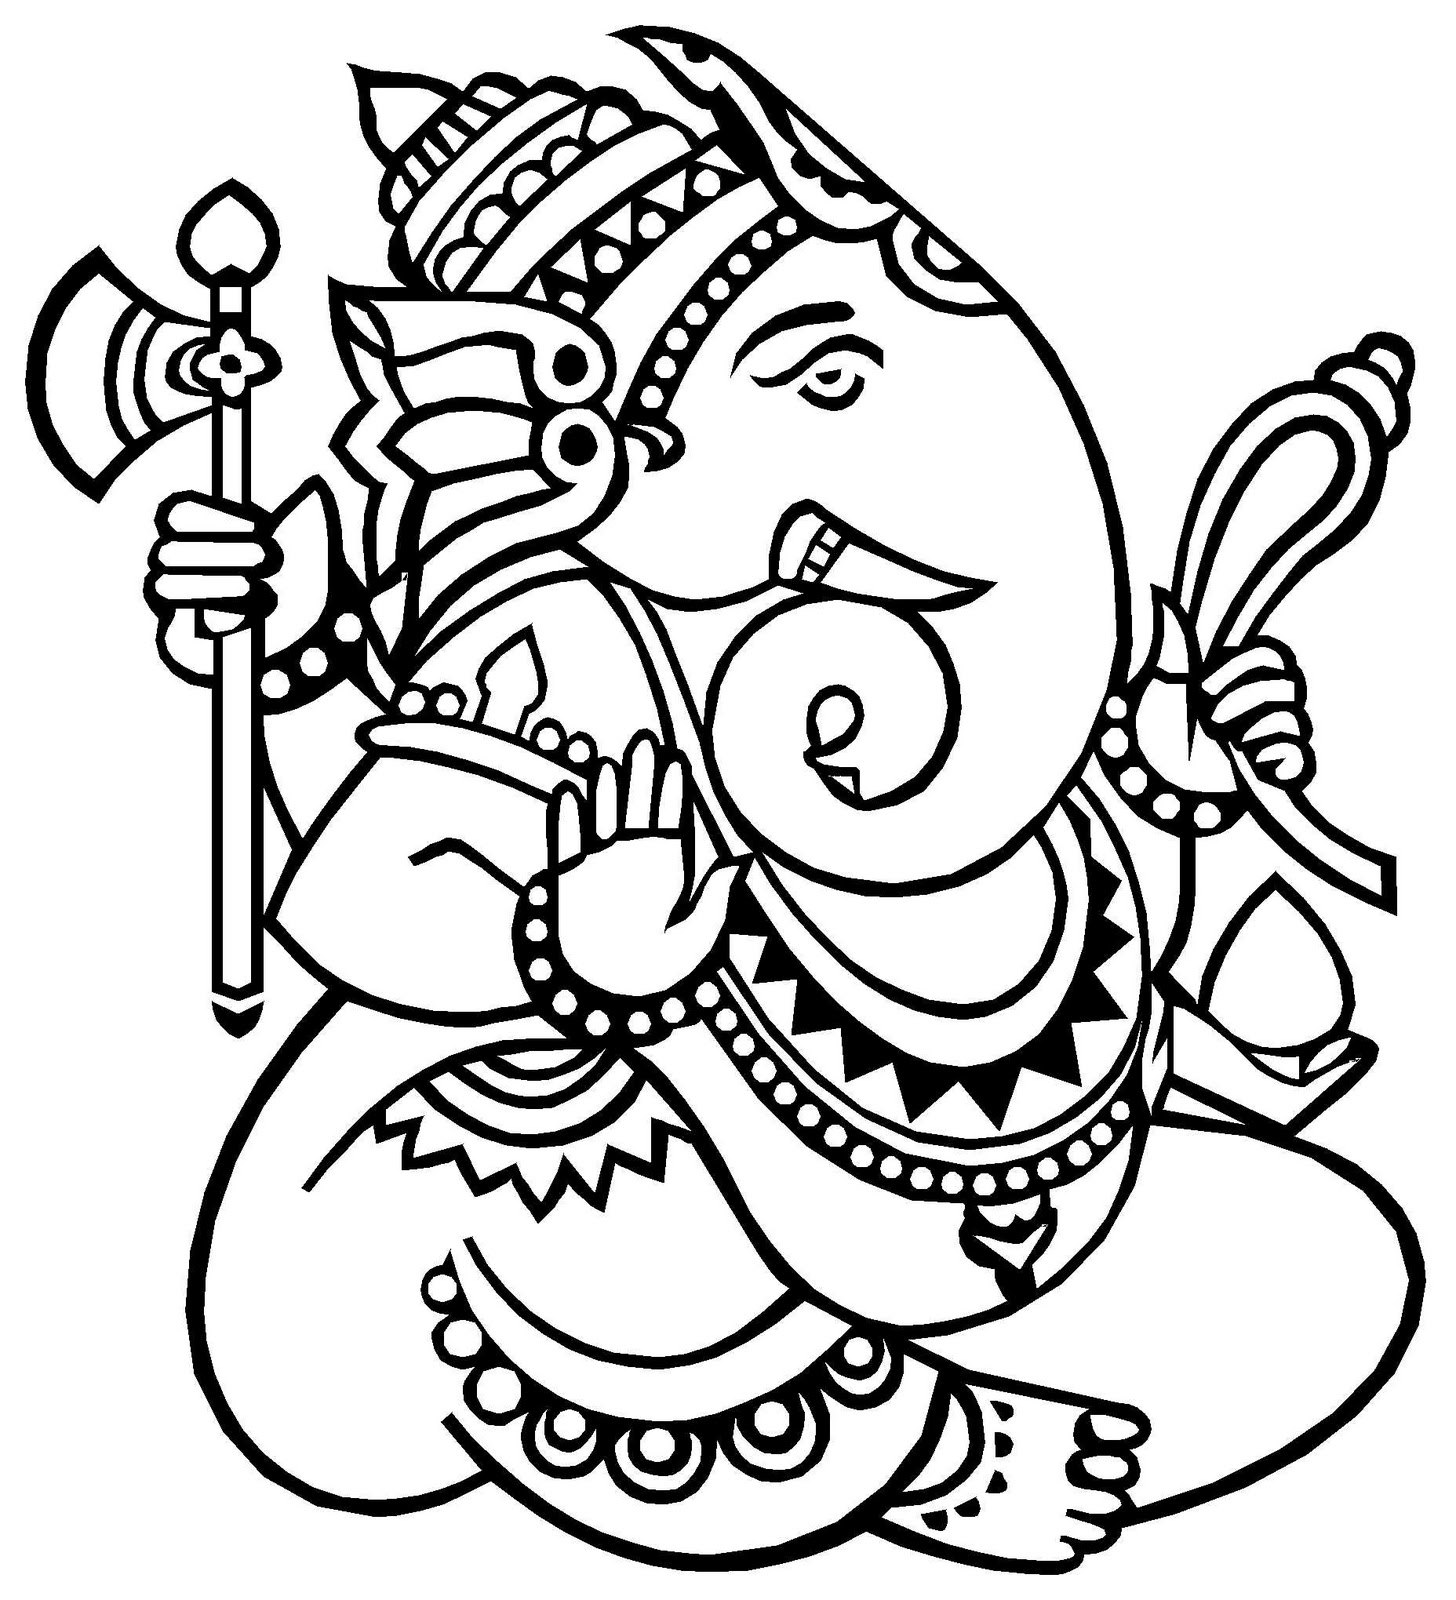 Top 5 kid games and activities for ganesh chaturthi baby for Ganesha coloring pages